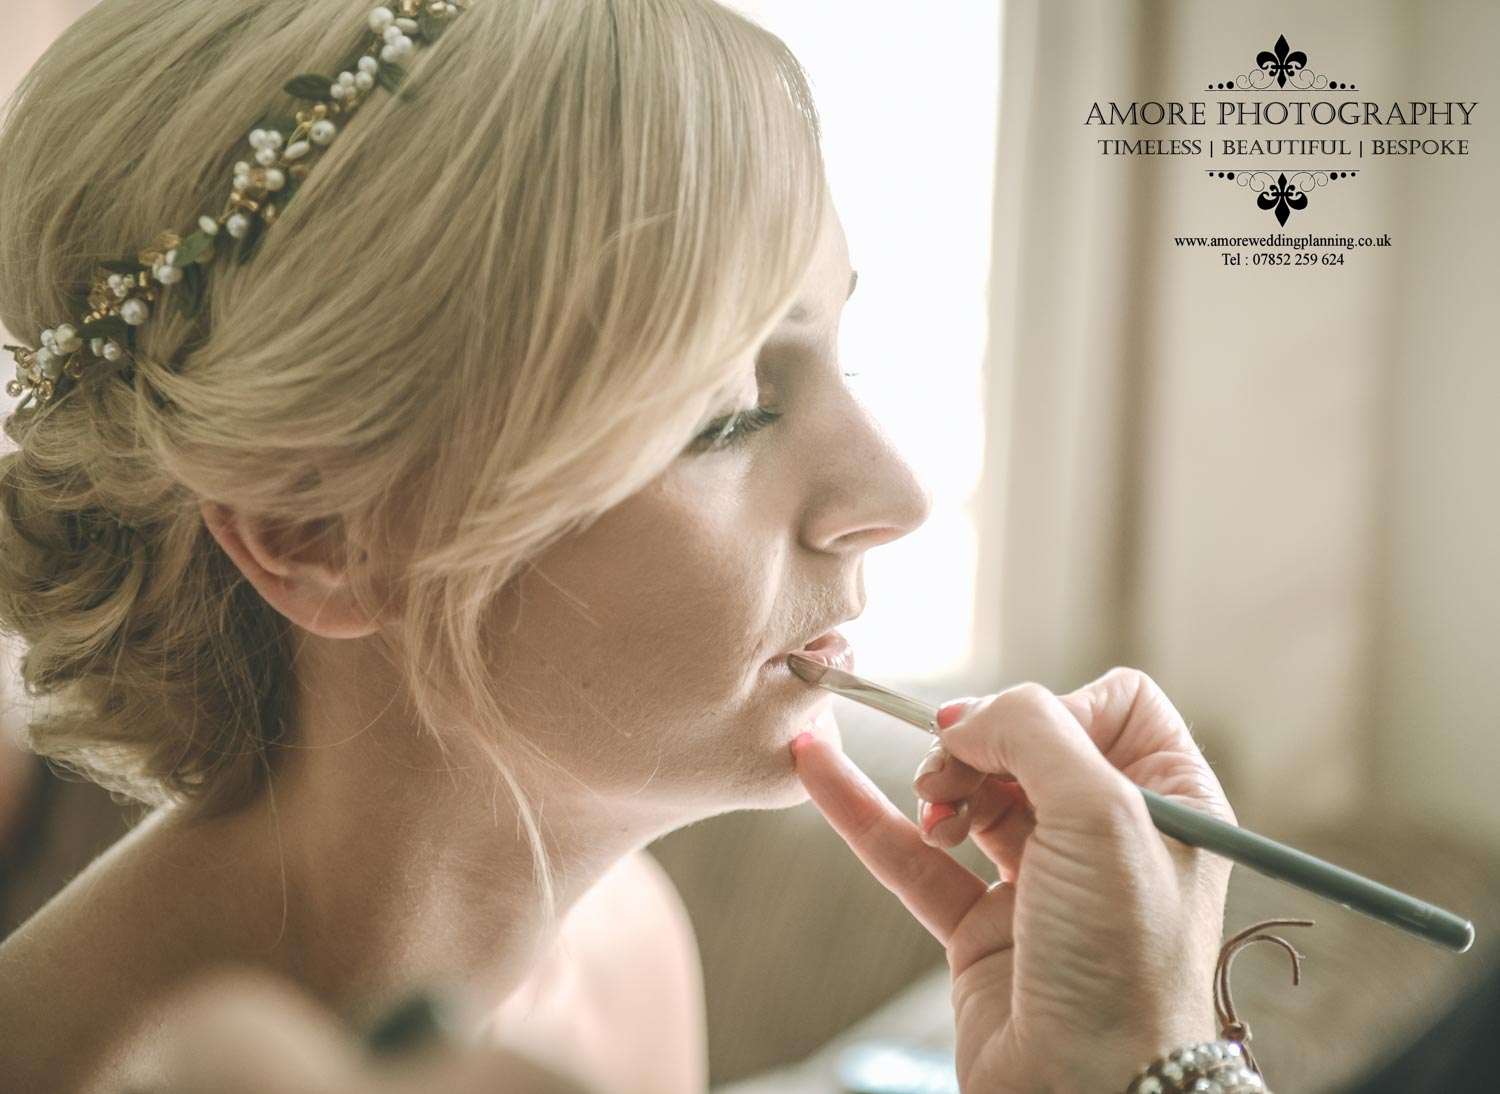 Vintage Wedding Photographer Wakefield North Yorkshire Leeds Wedding Photography Vintage Rustic Barn Weddings (13)